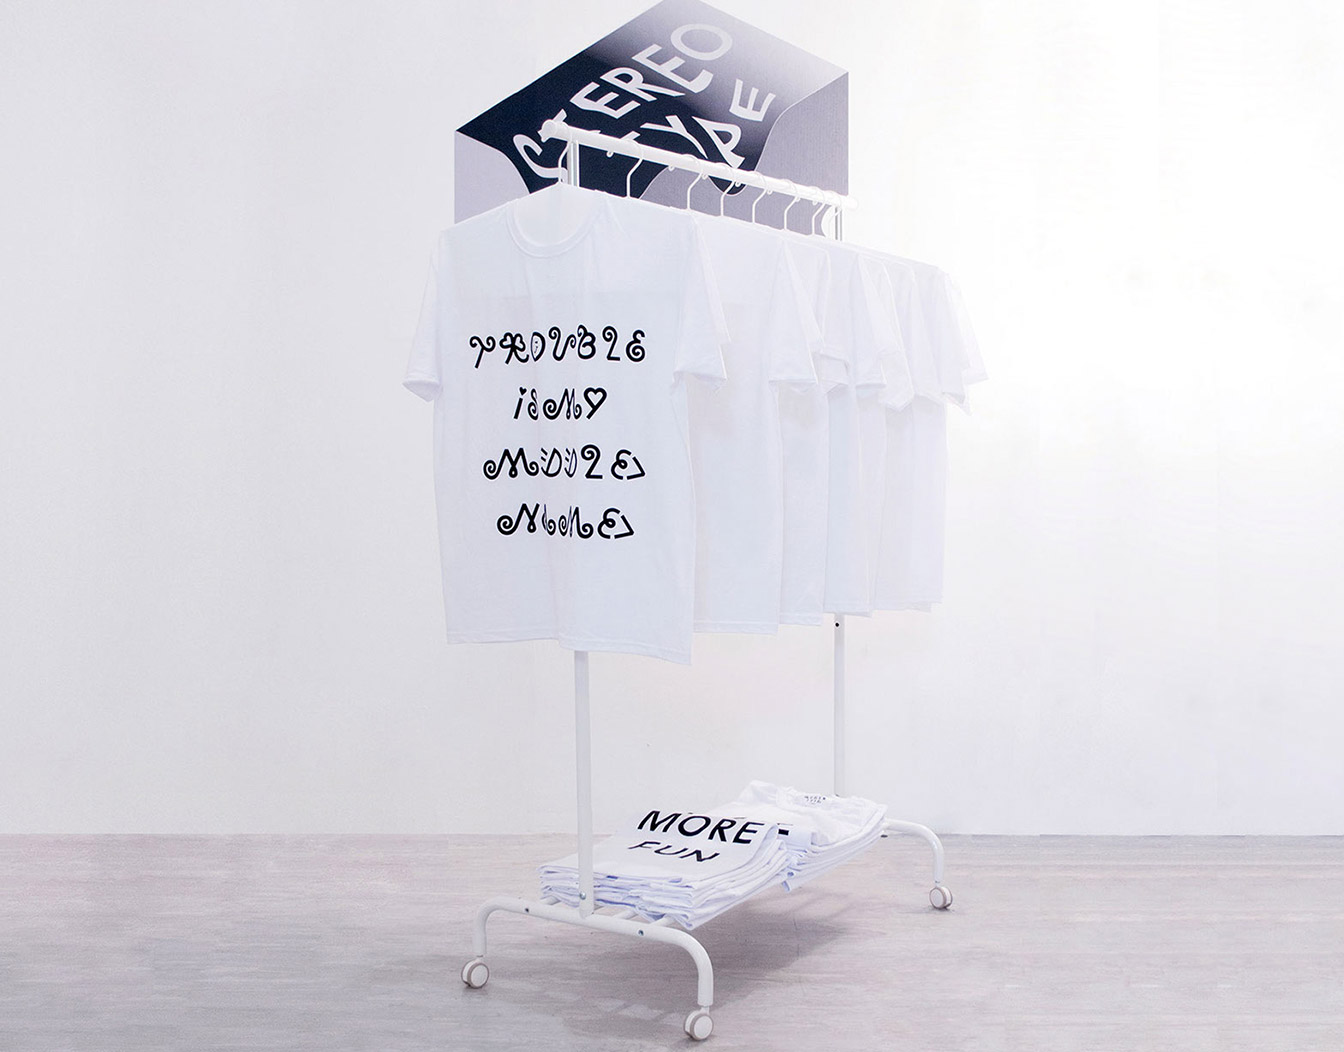 White tshirts on hanger with slogans